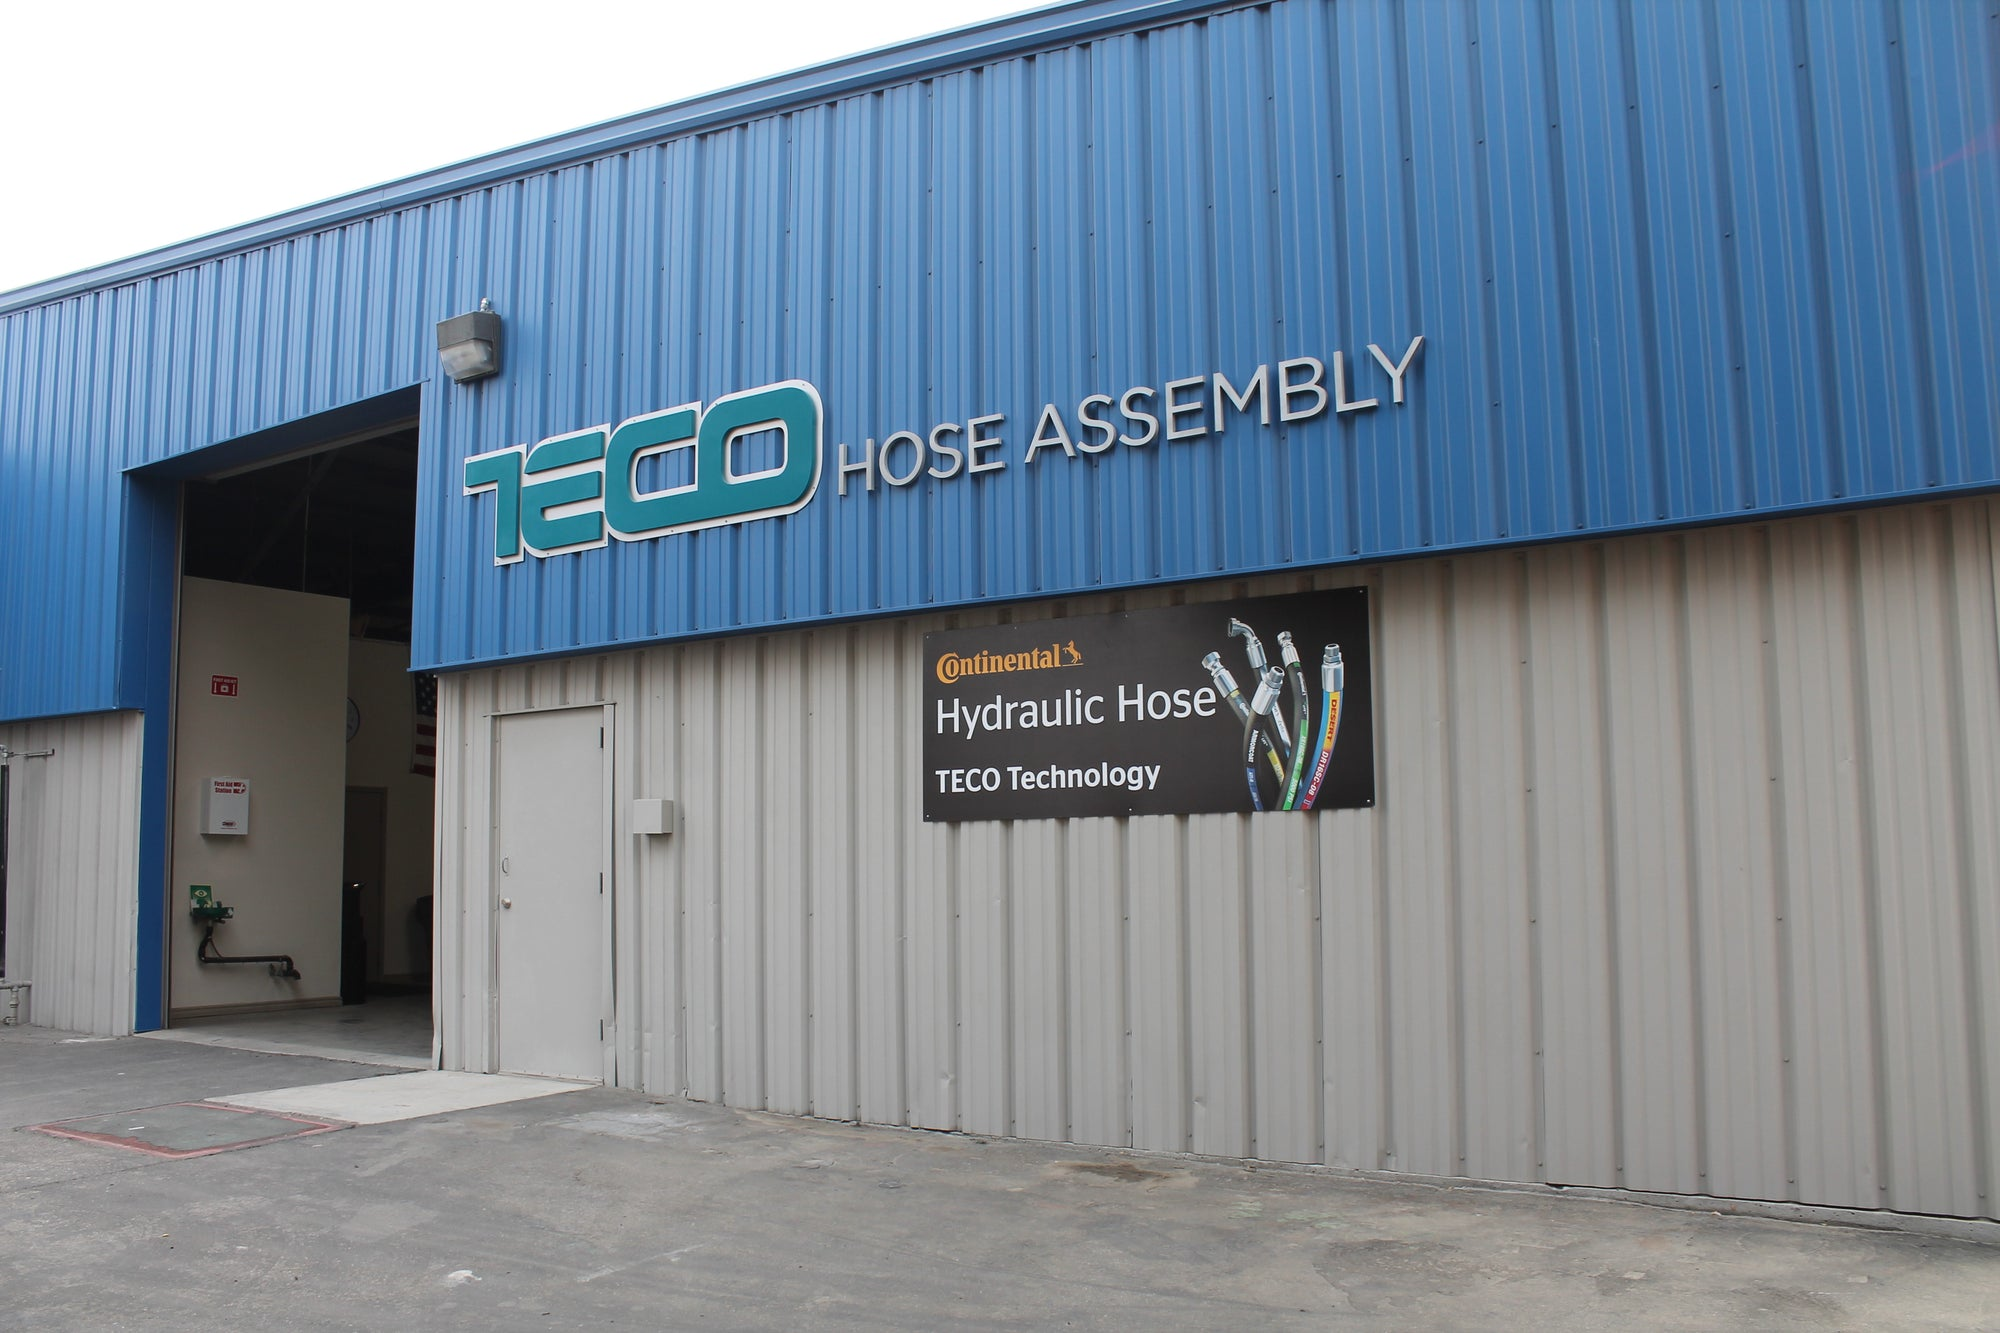 Fresno,CA is home to our NEW Hose Fab. Facility